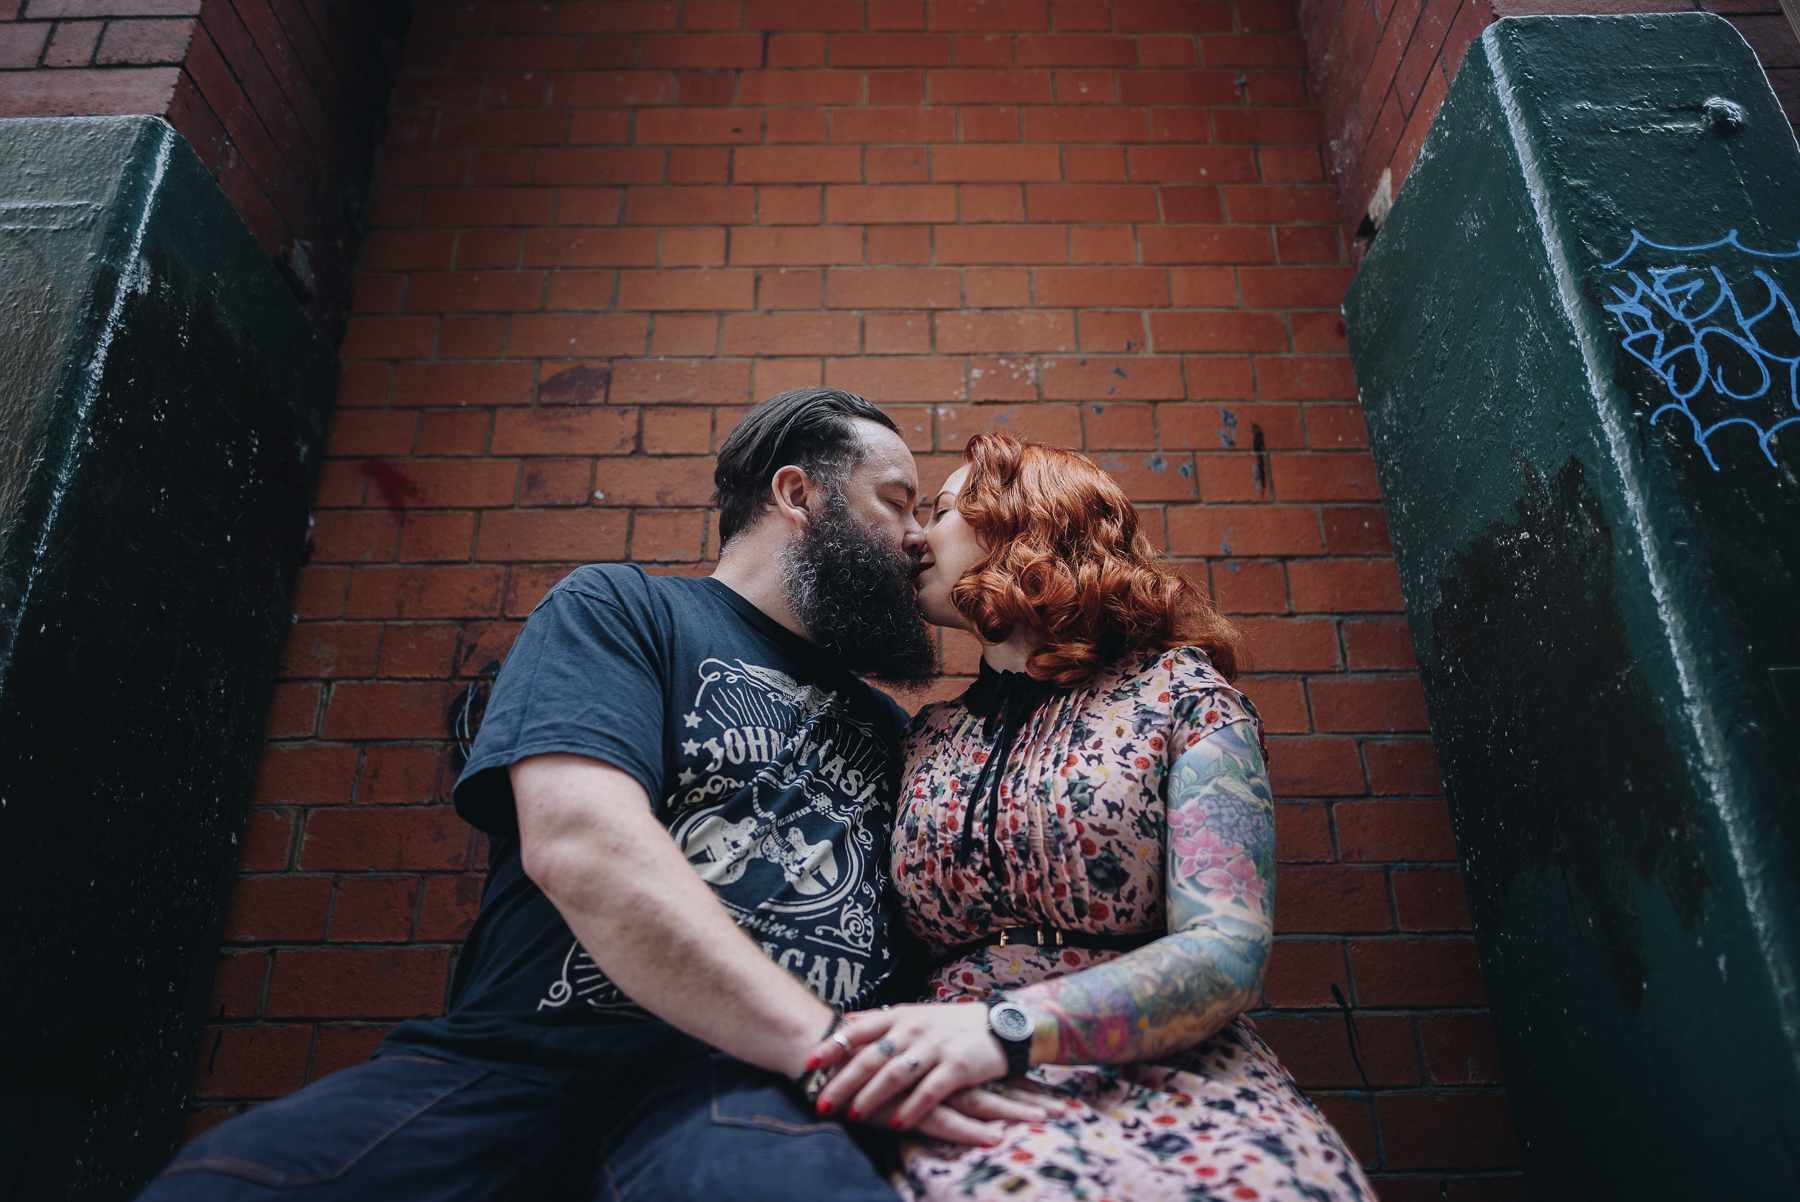 Manchester_Engagement_Photography_Northers_Quarter_The_Pin-Up_Bride-45.jpg